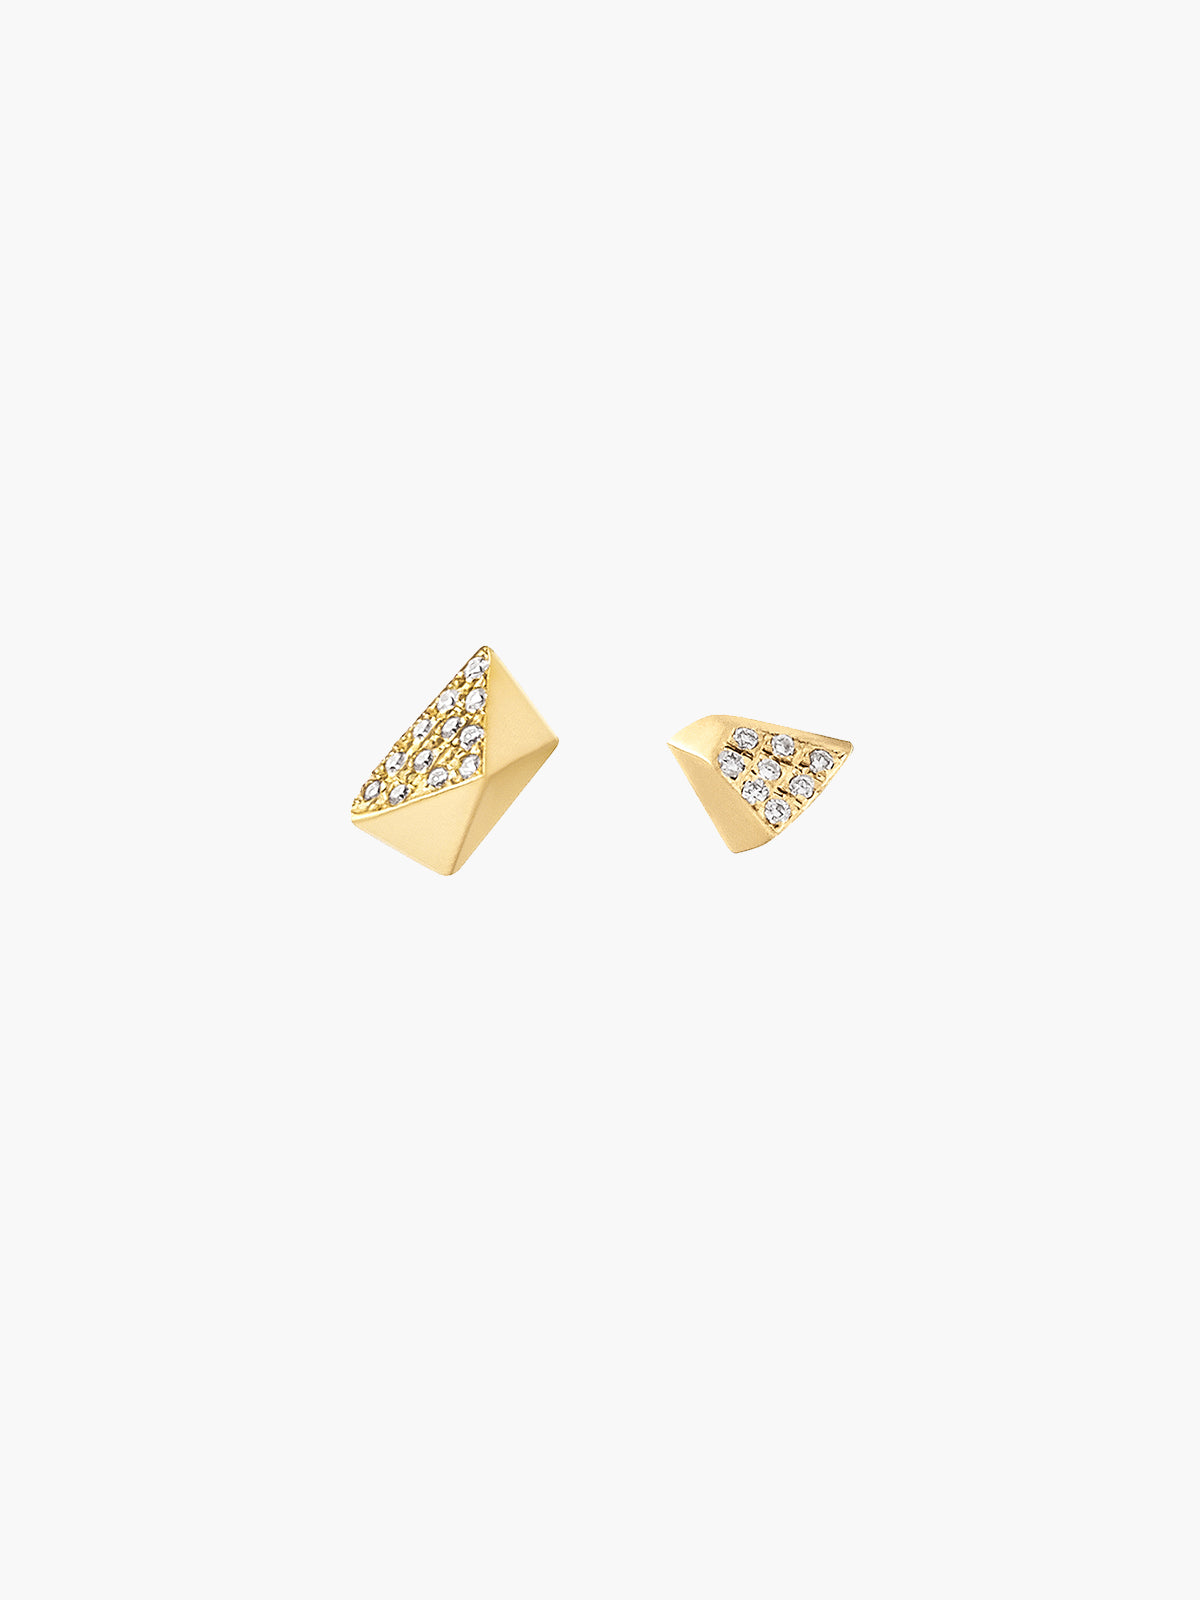 Diamond Mismatched Pyramid & Triangle Studs | Yellow Gold Diamond Mismatched Pyramid & Triangle Studs | Yellow Gold